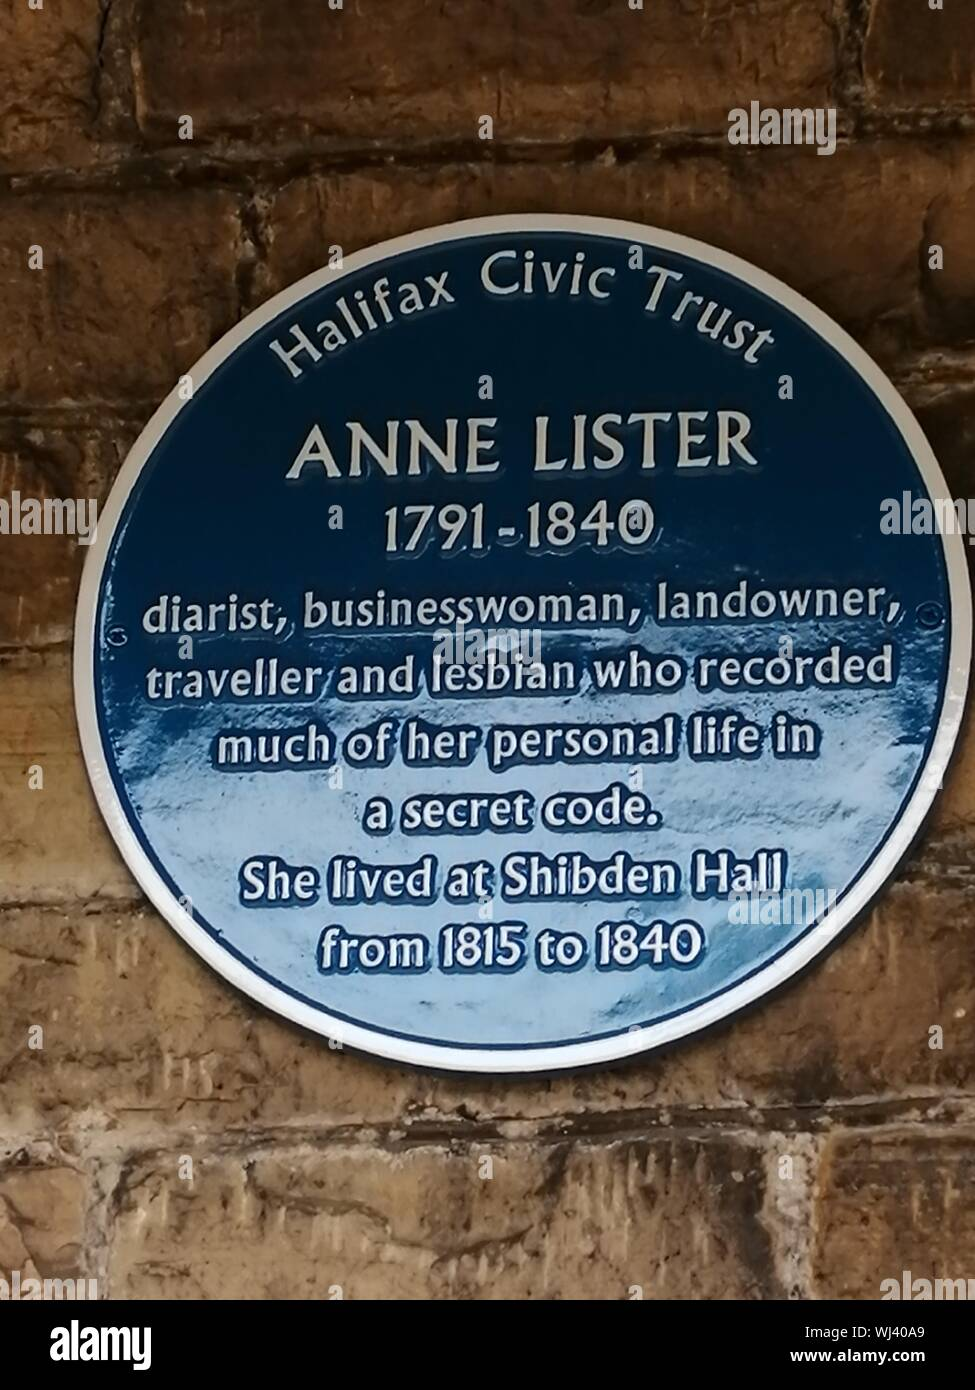 Anne Lister Stock Photos & Anne Lister Stock Images - Alamy